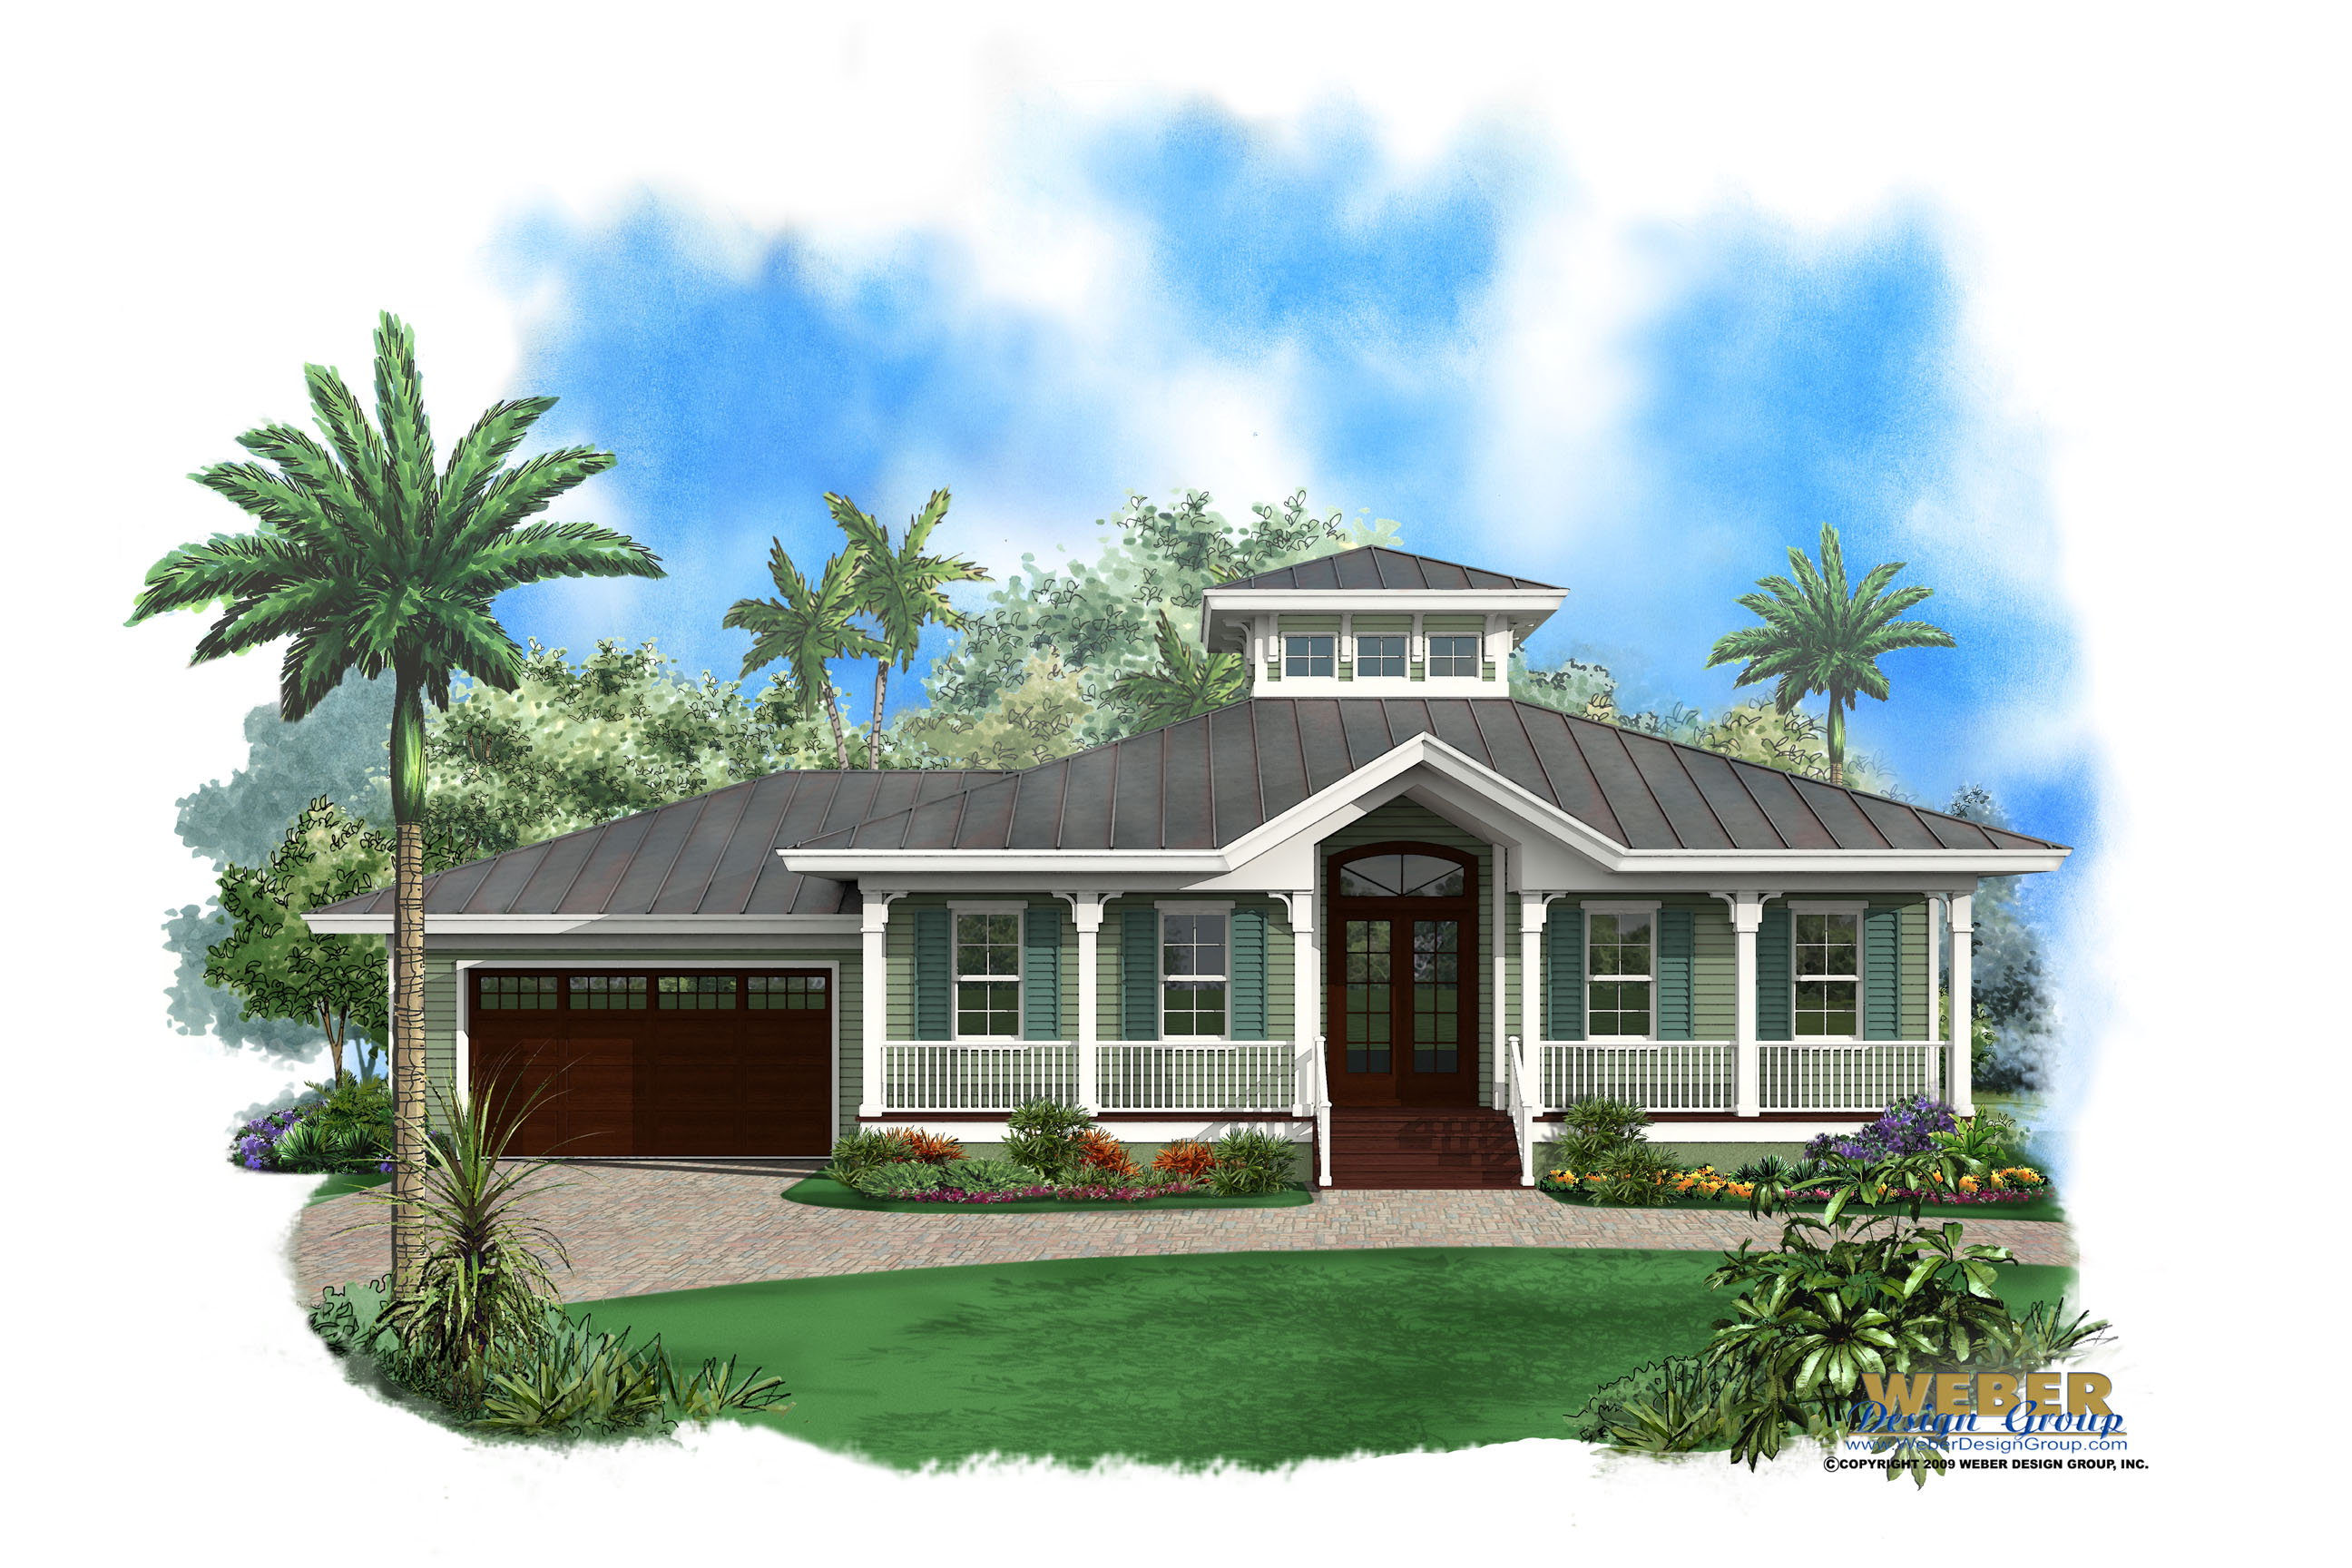 Homes with wrap around porches plan - Ambergris Cay House Plan